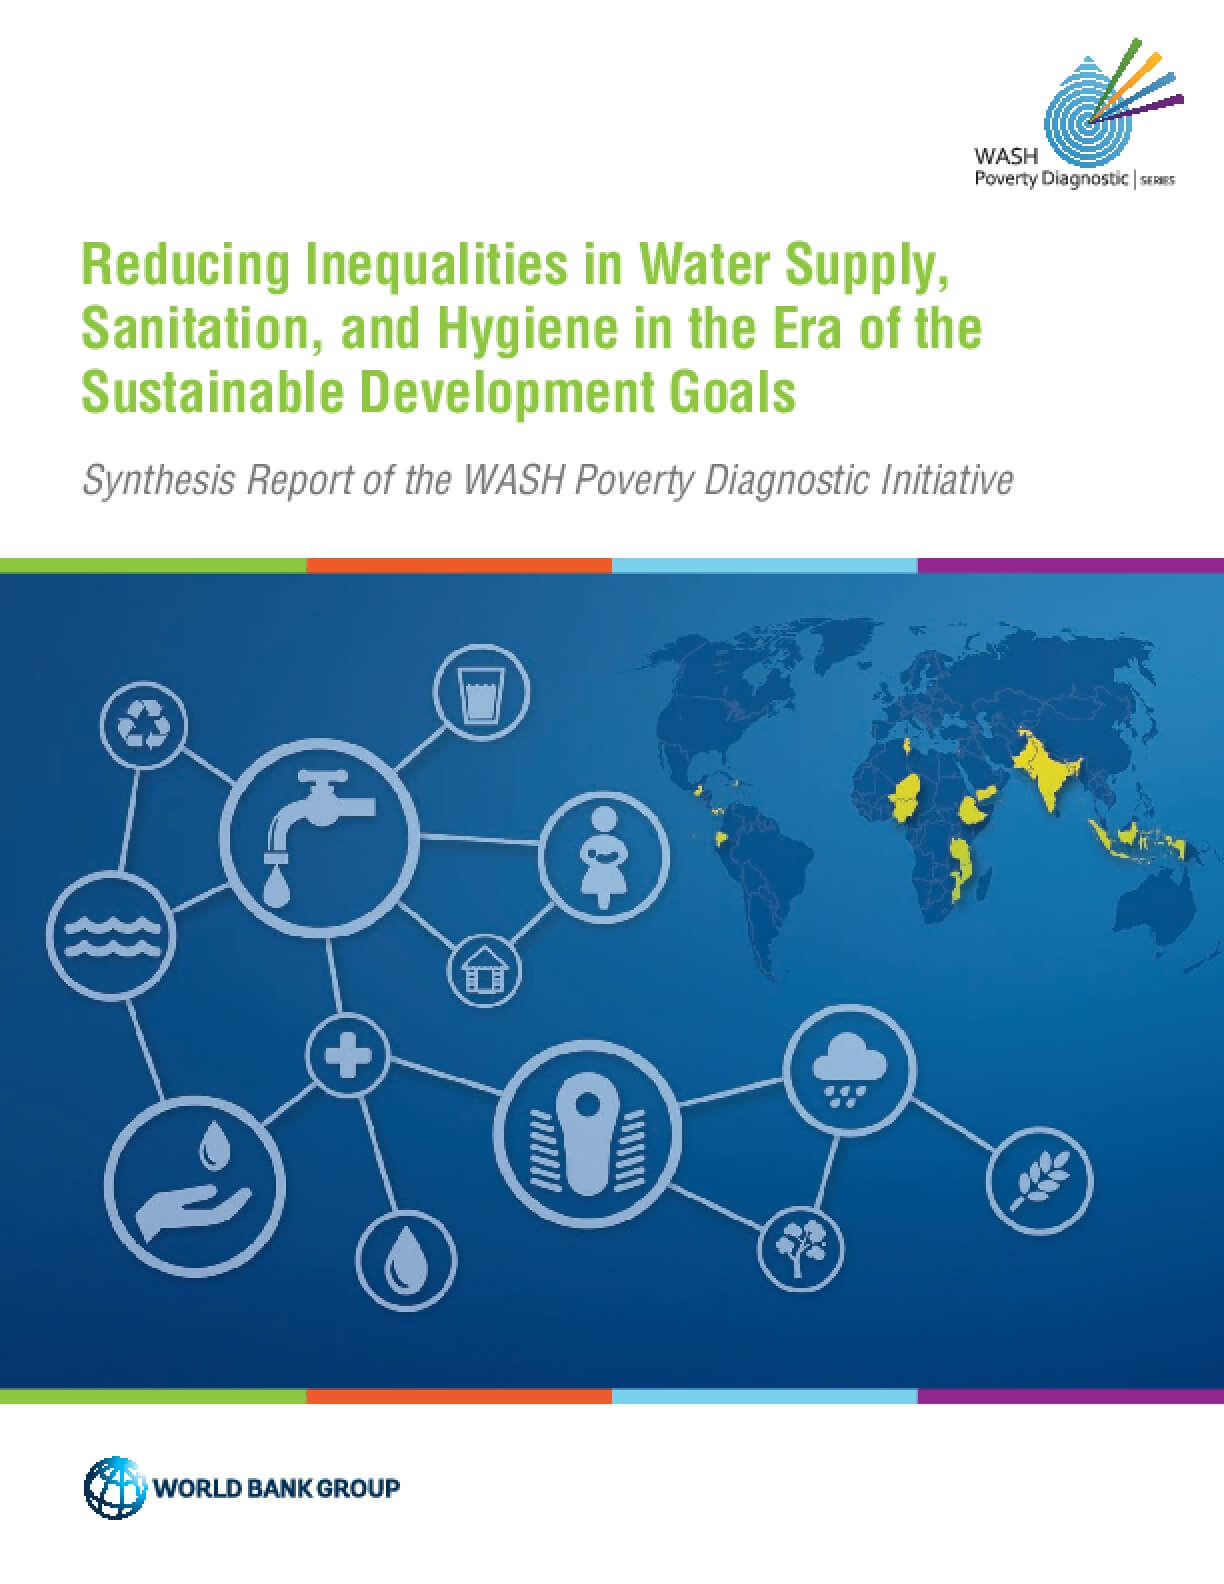 Reducing Inequalities in Water Supply, Sanitation, and Hygiene in the Era of the Sustainable Development Goals